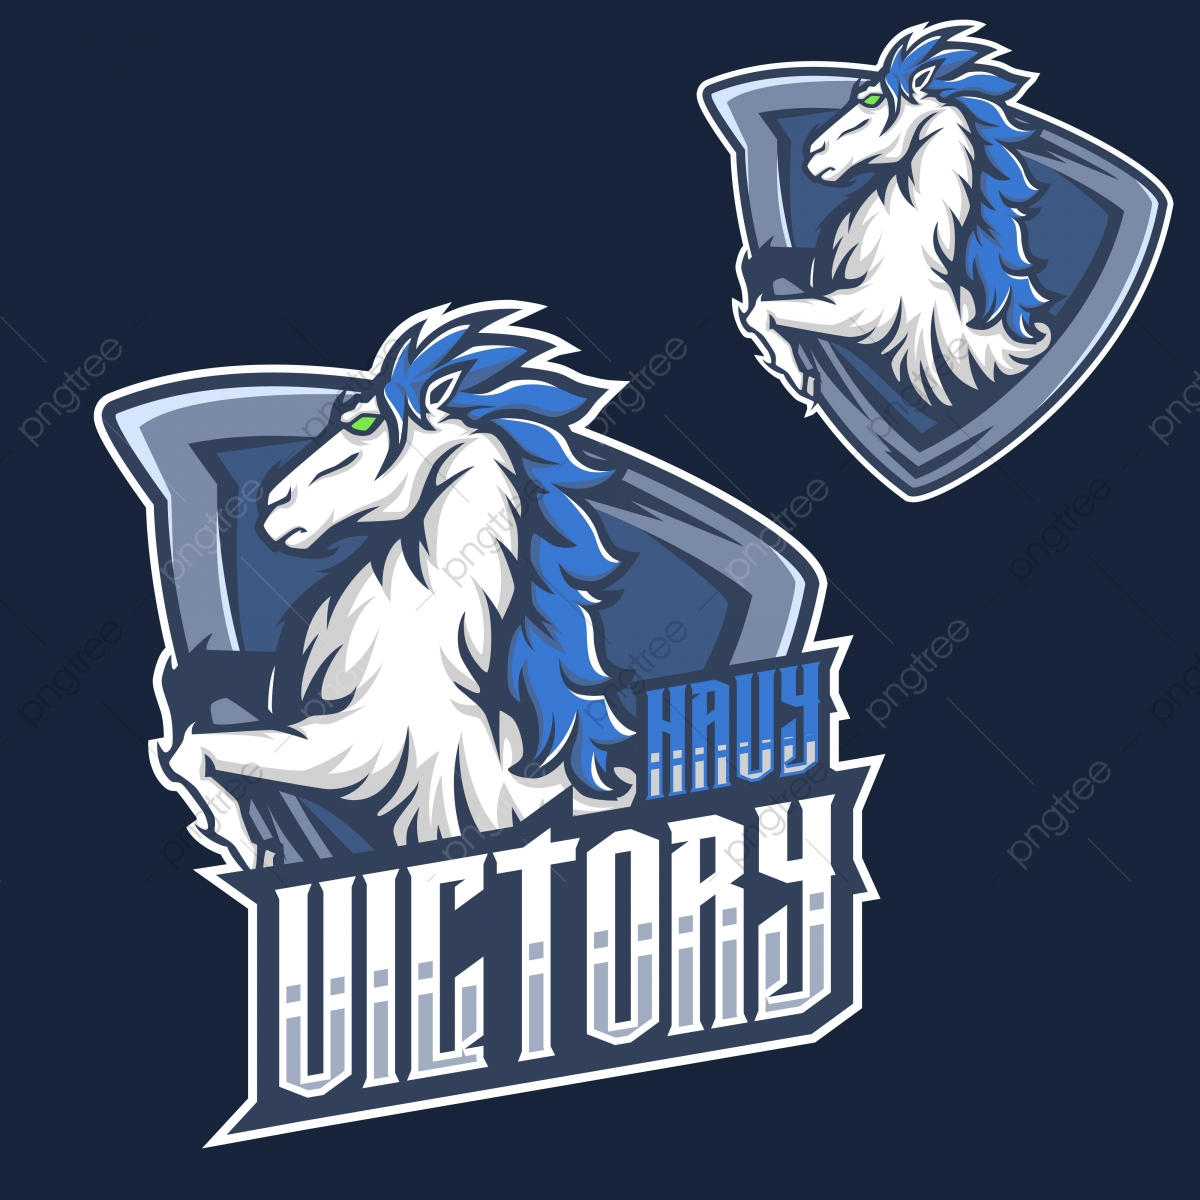 Navy Horse Mustang Esports Logo For Mascot And Twitch Badge Character Club Png And Vector With Transparent Background For Free Download